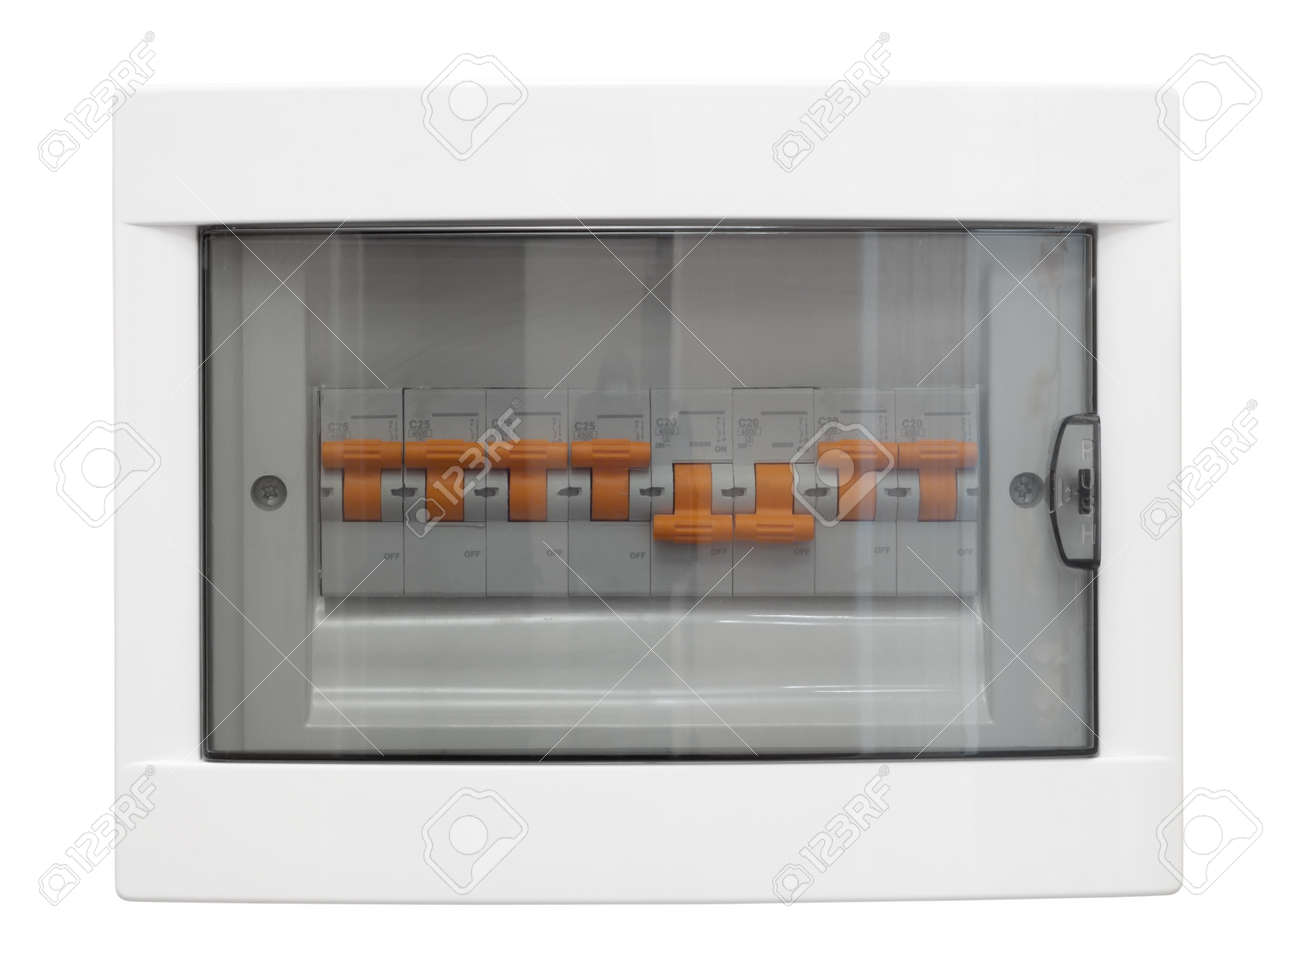 hight resolution of electricity distribution box closed fusebox isolated on whiteelectricity distribution box closed fusebox isolated on white background